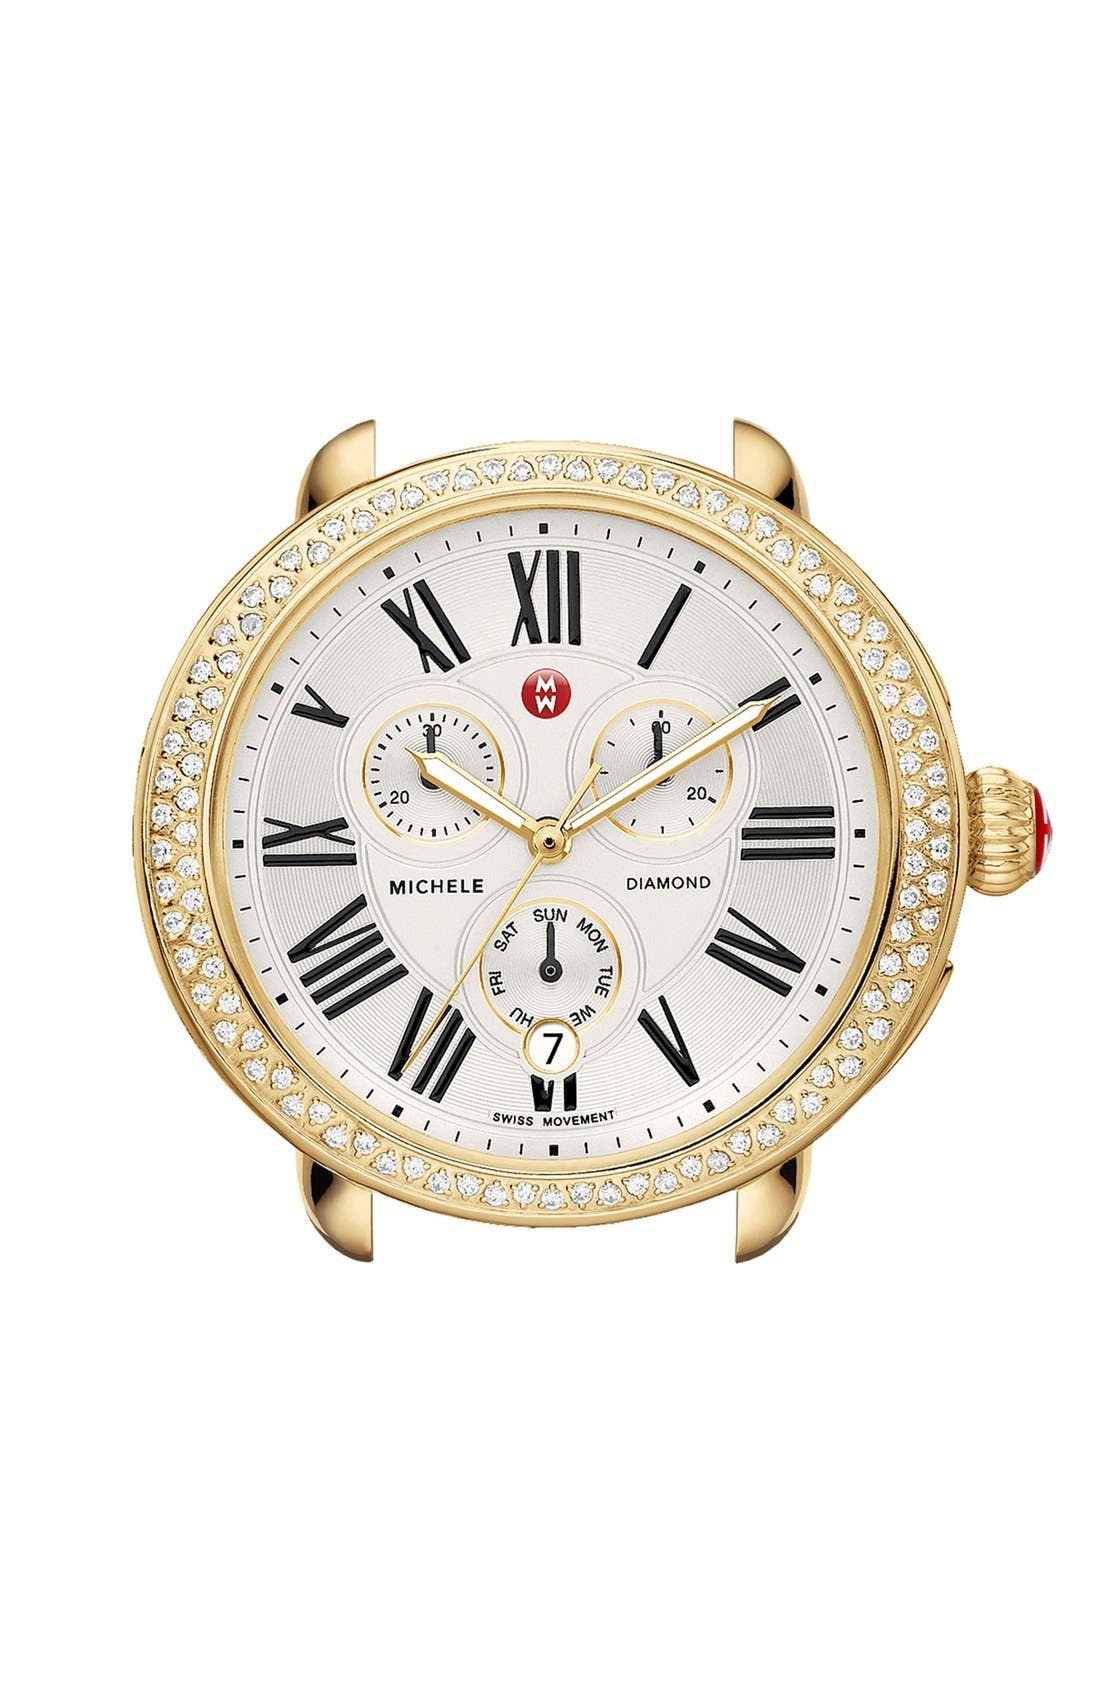 Main Image - MICHELE Serein Diamond Gold Plated Watch Case, 40mm x 38mm